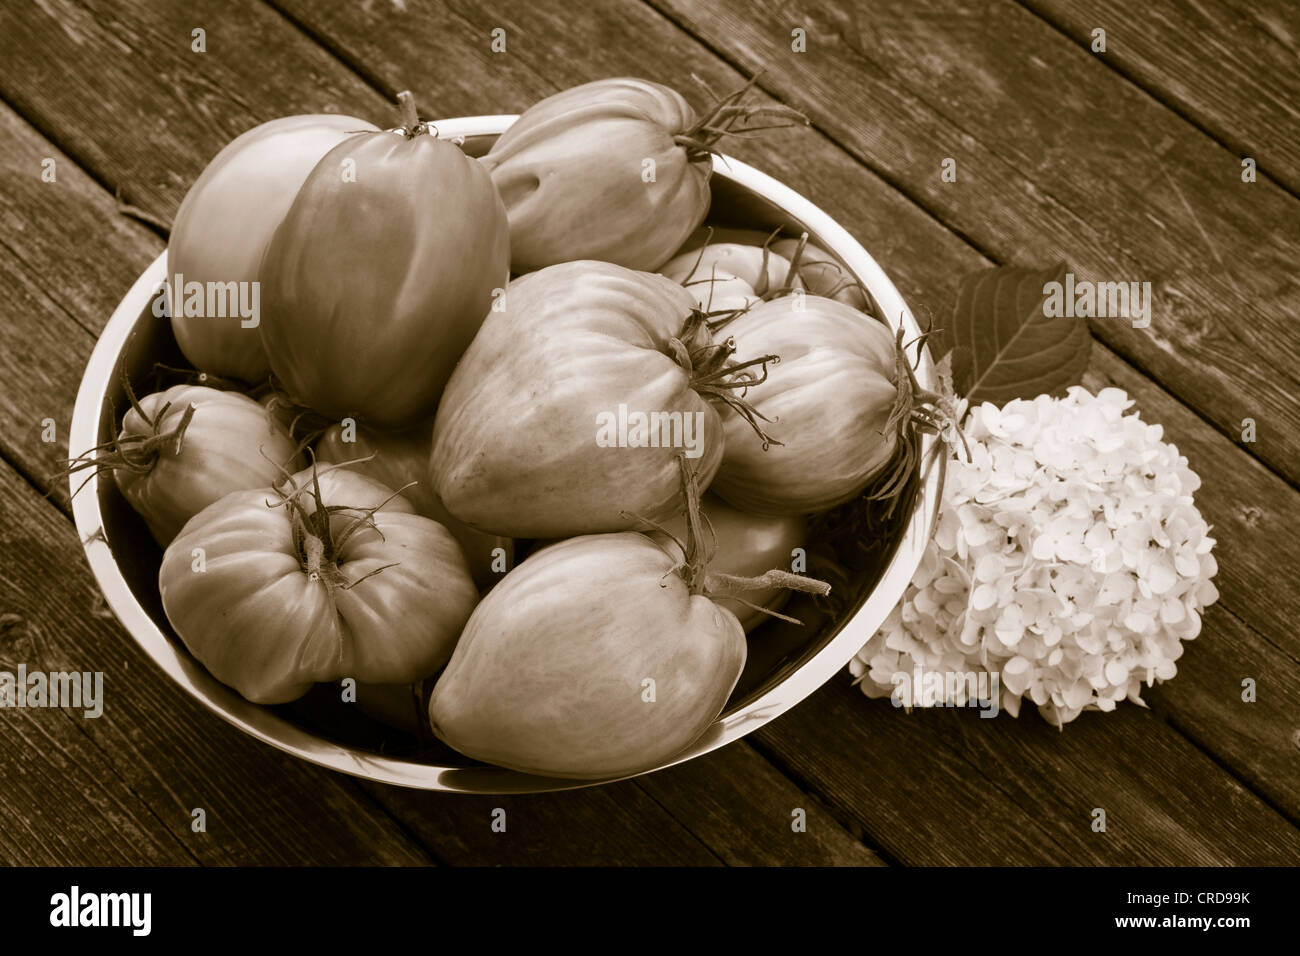 A Bowl of Oxheart Tomatoes Monochrome.  A bowl of large tomatoes of various hues with a hydrangia flower. - Stock Image